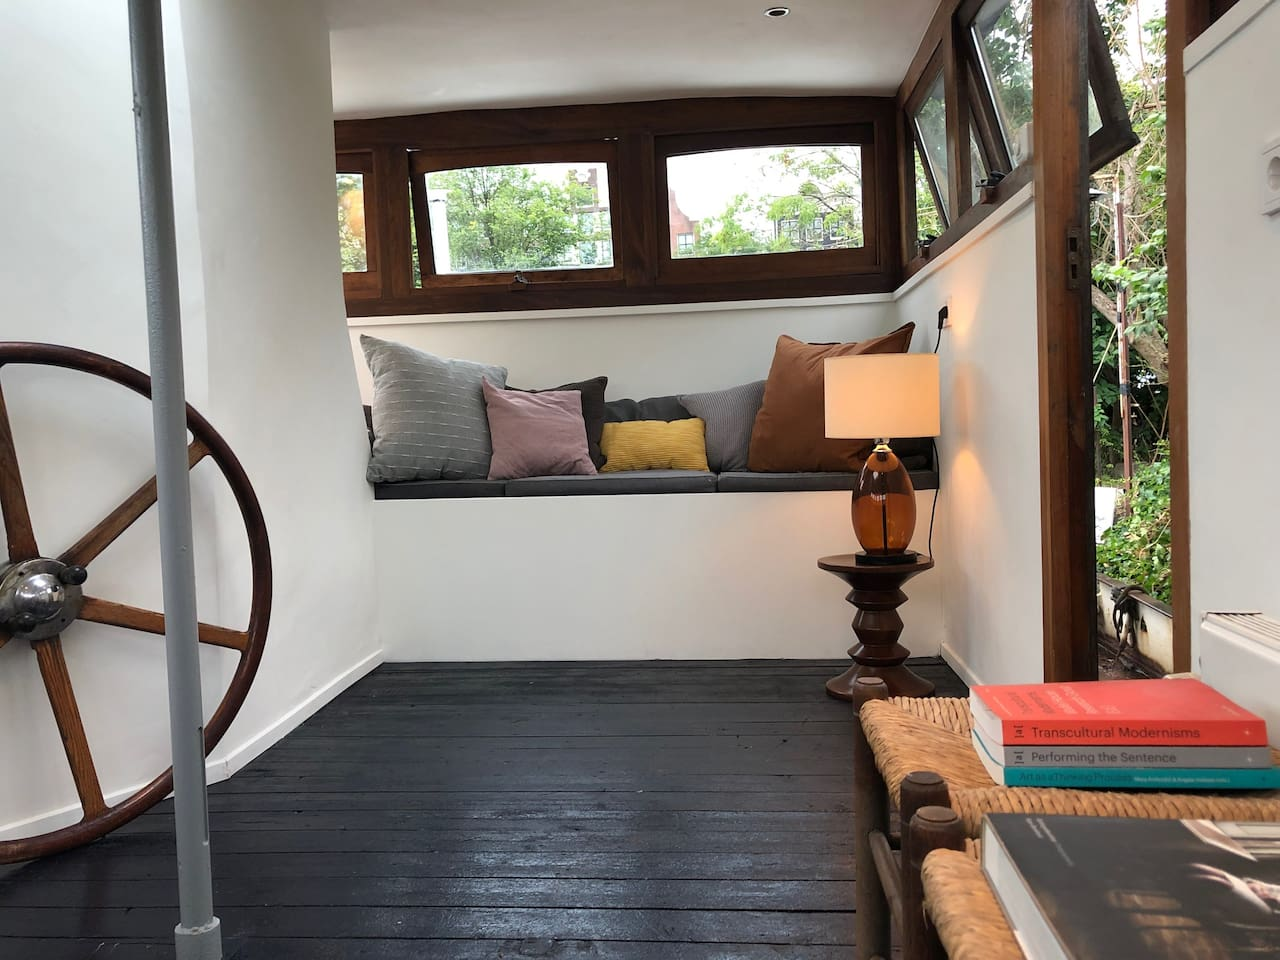 spacious private living room in the steering hut offering great views over the water